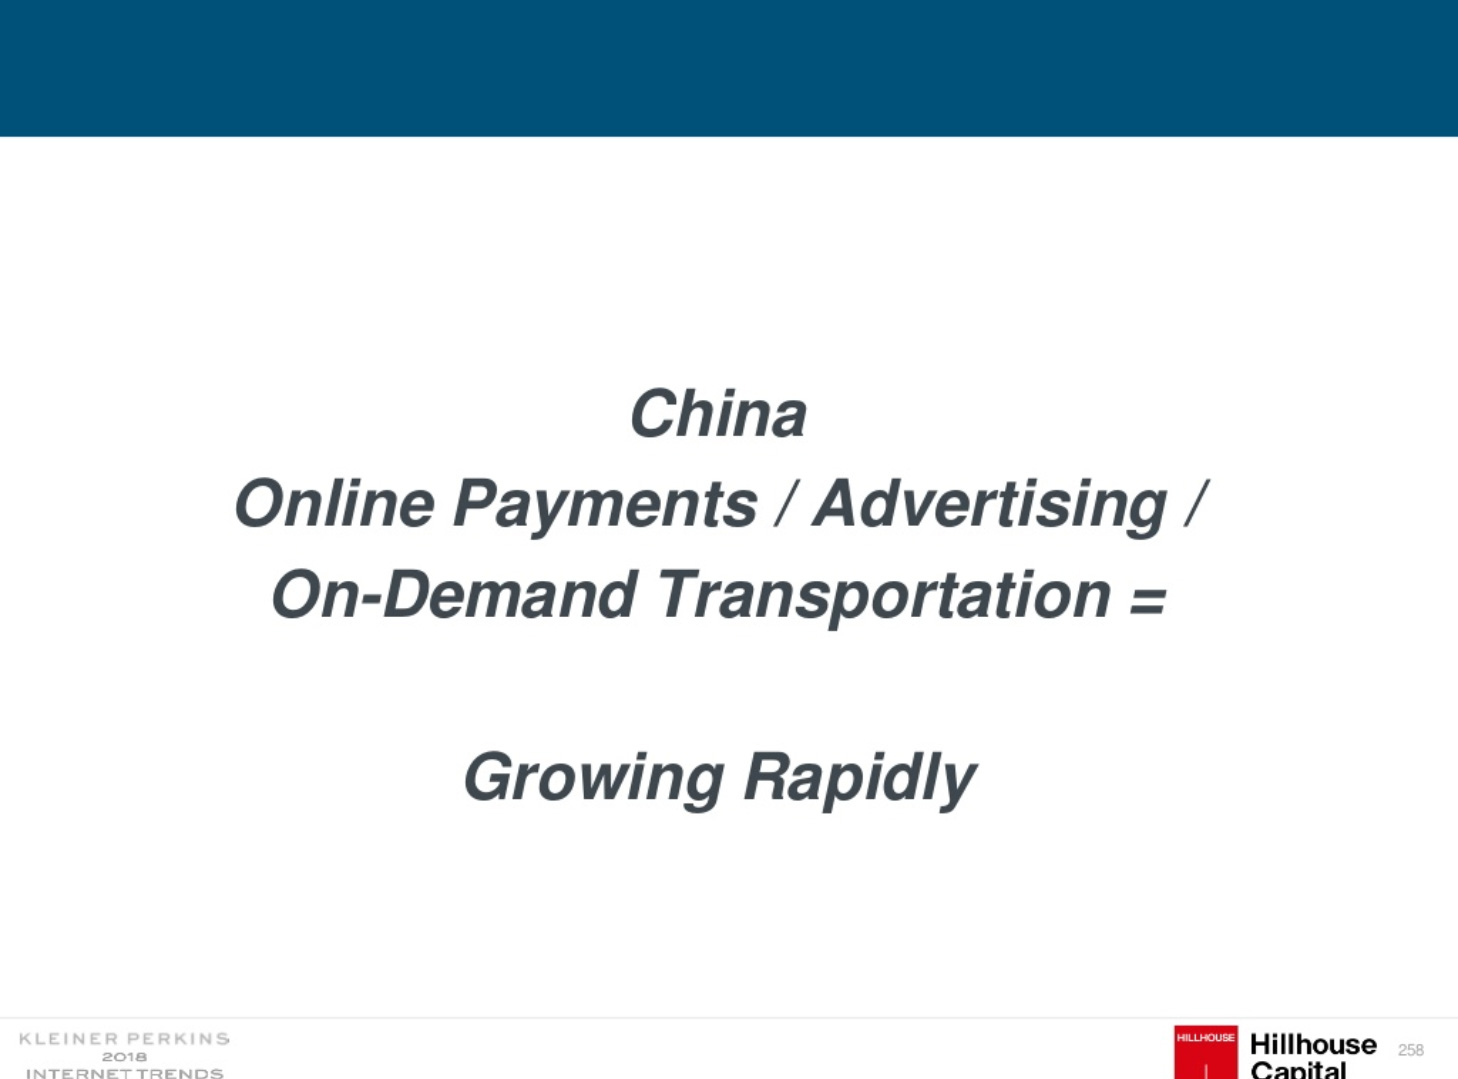 Online payments in China is growing rapidly in 2018